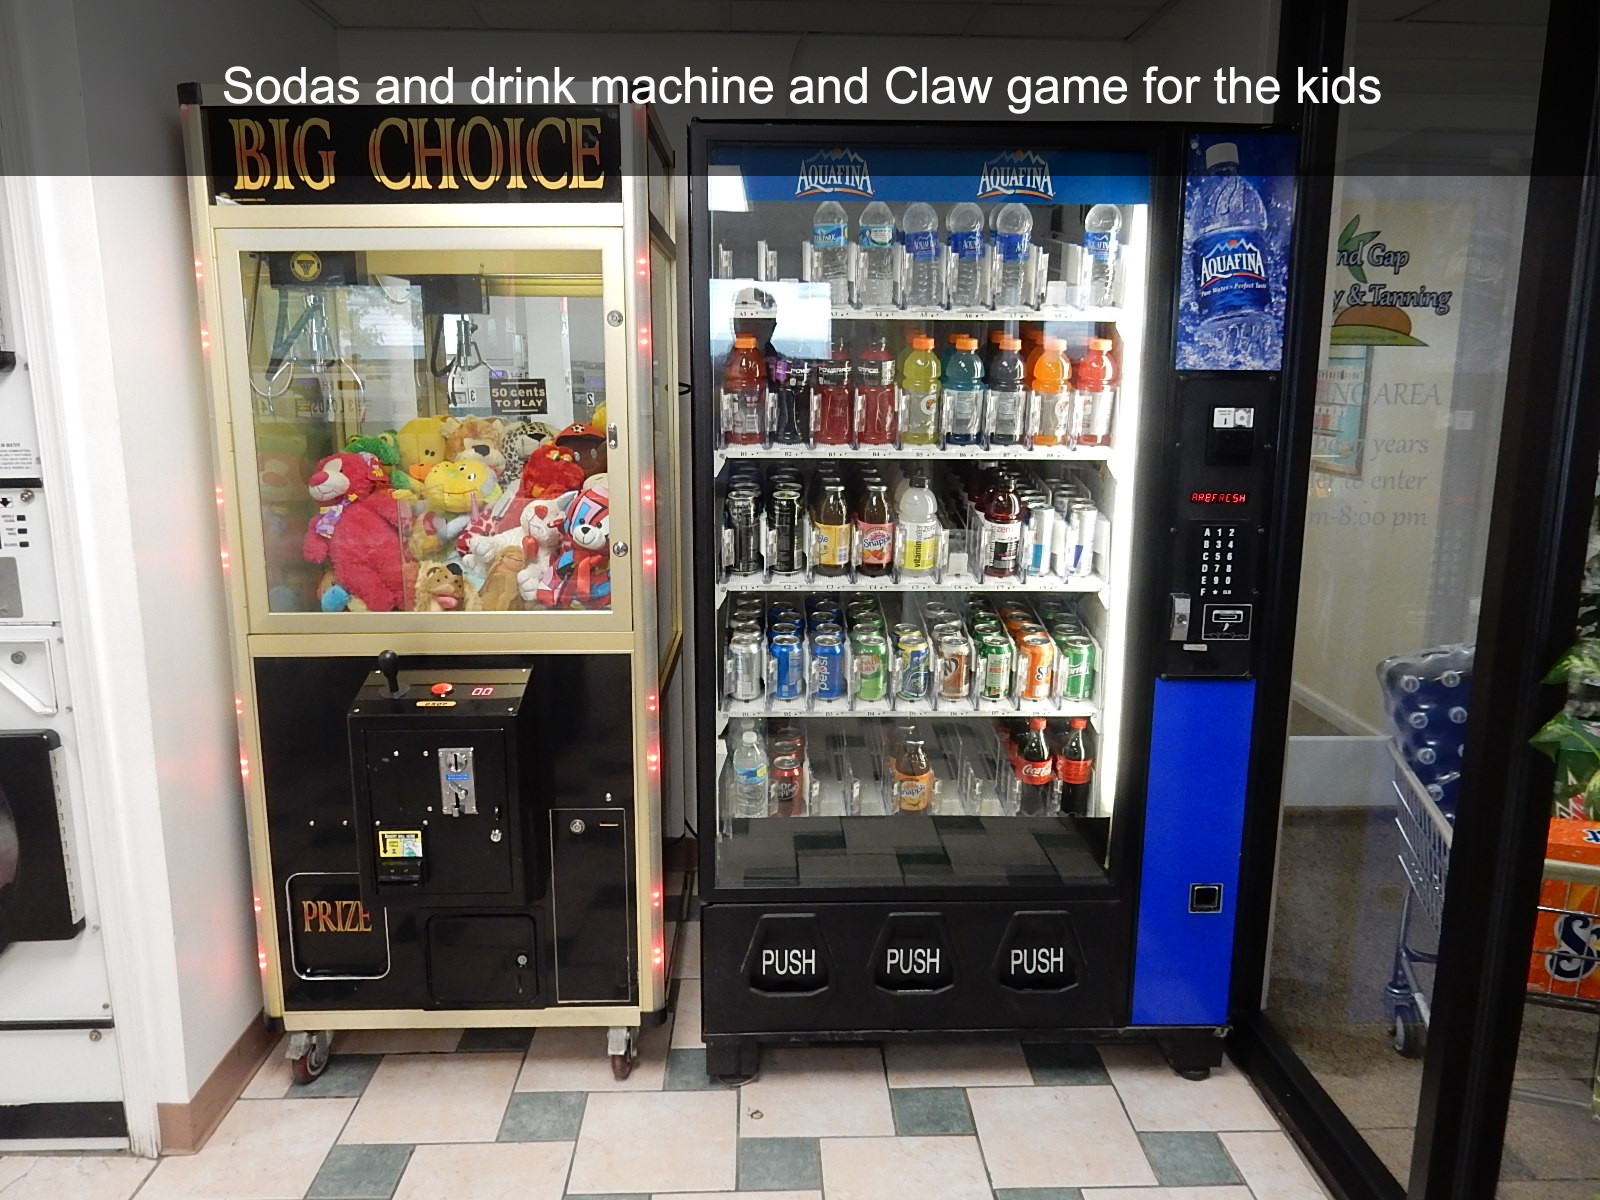 Sodas and drink machine and Claw game for the kids